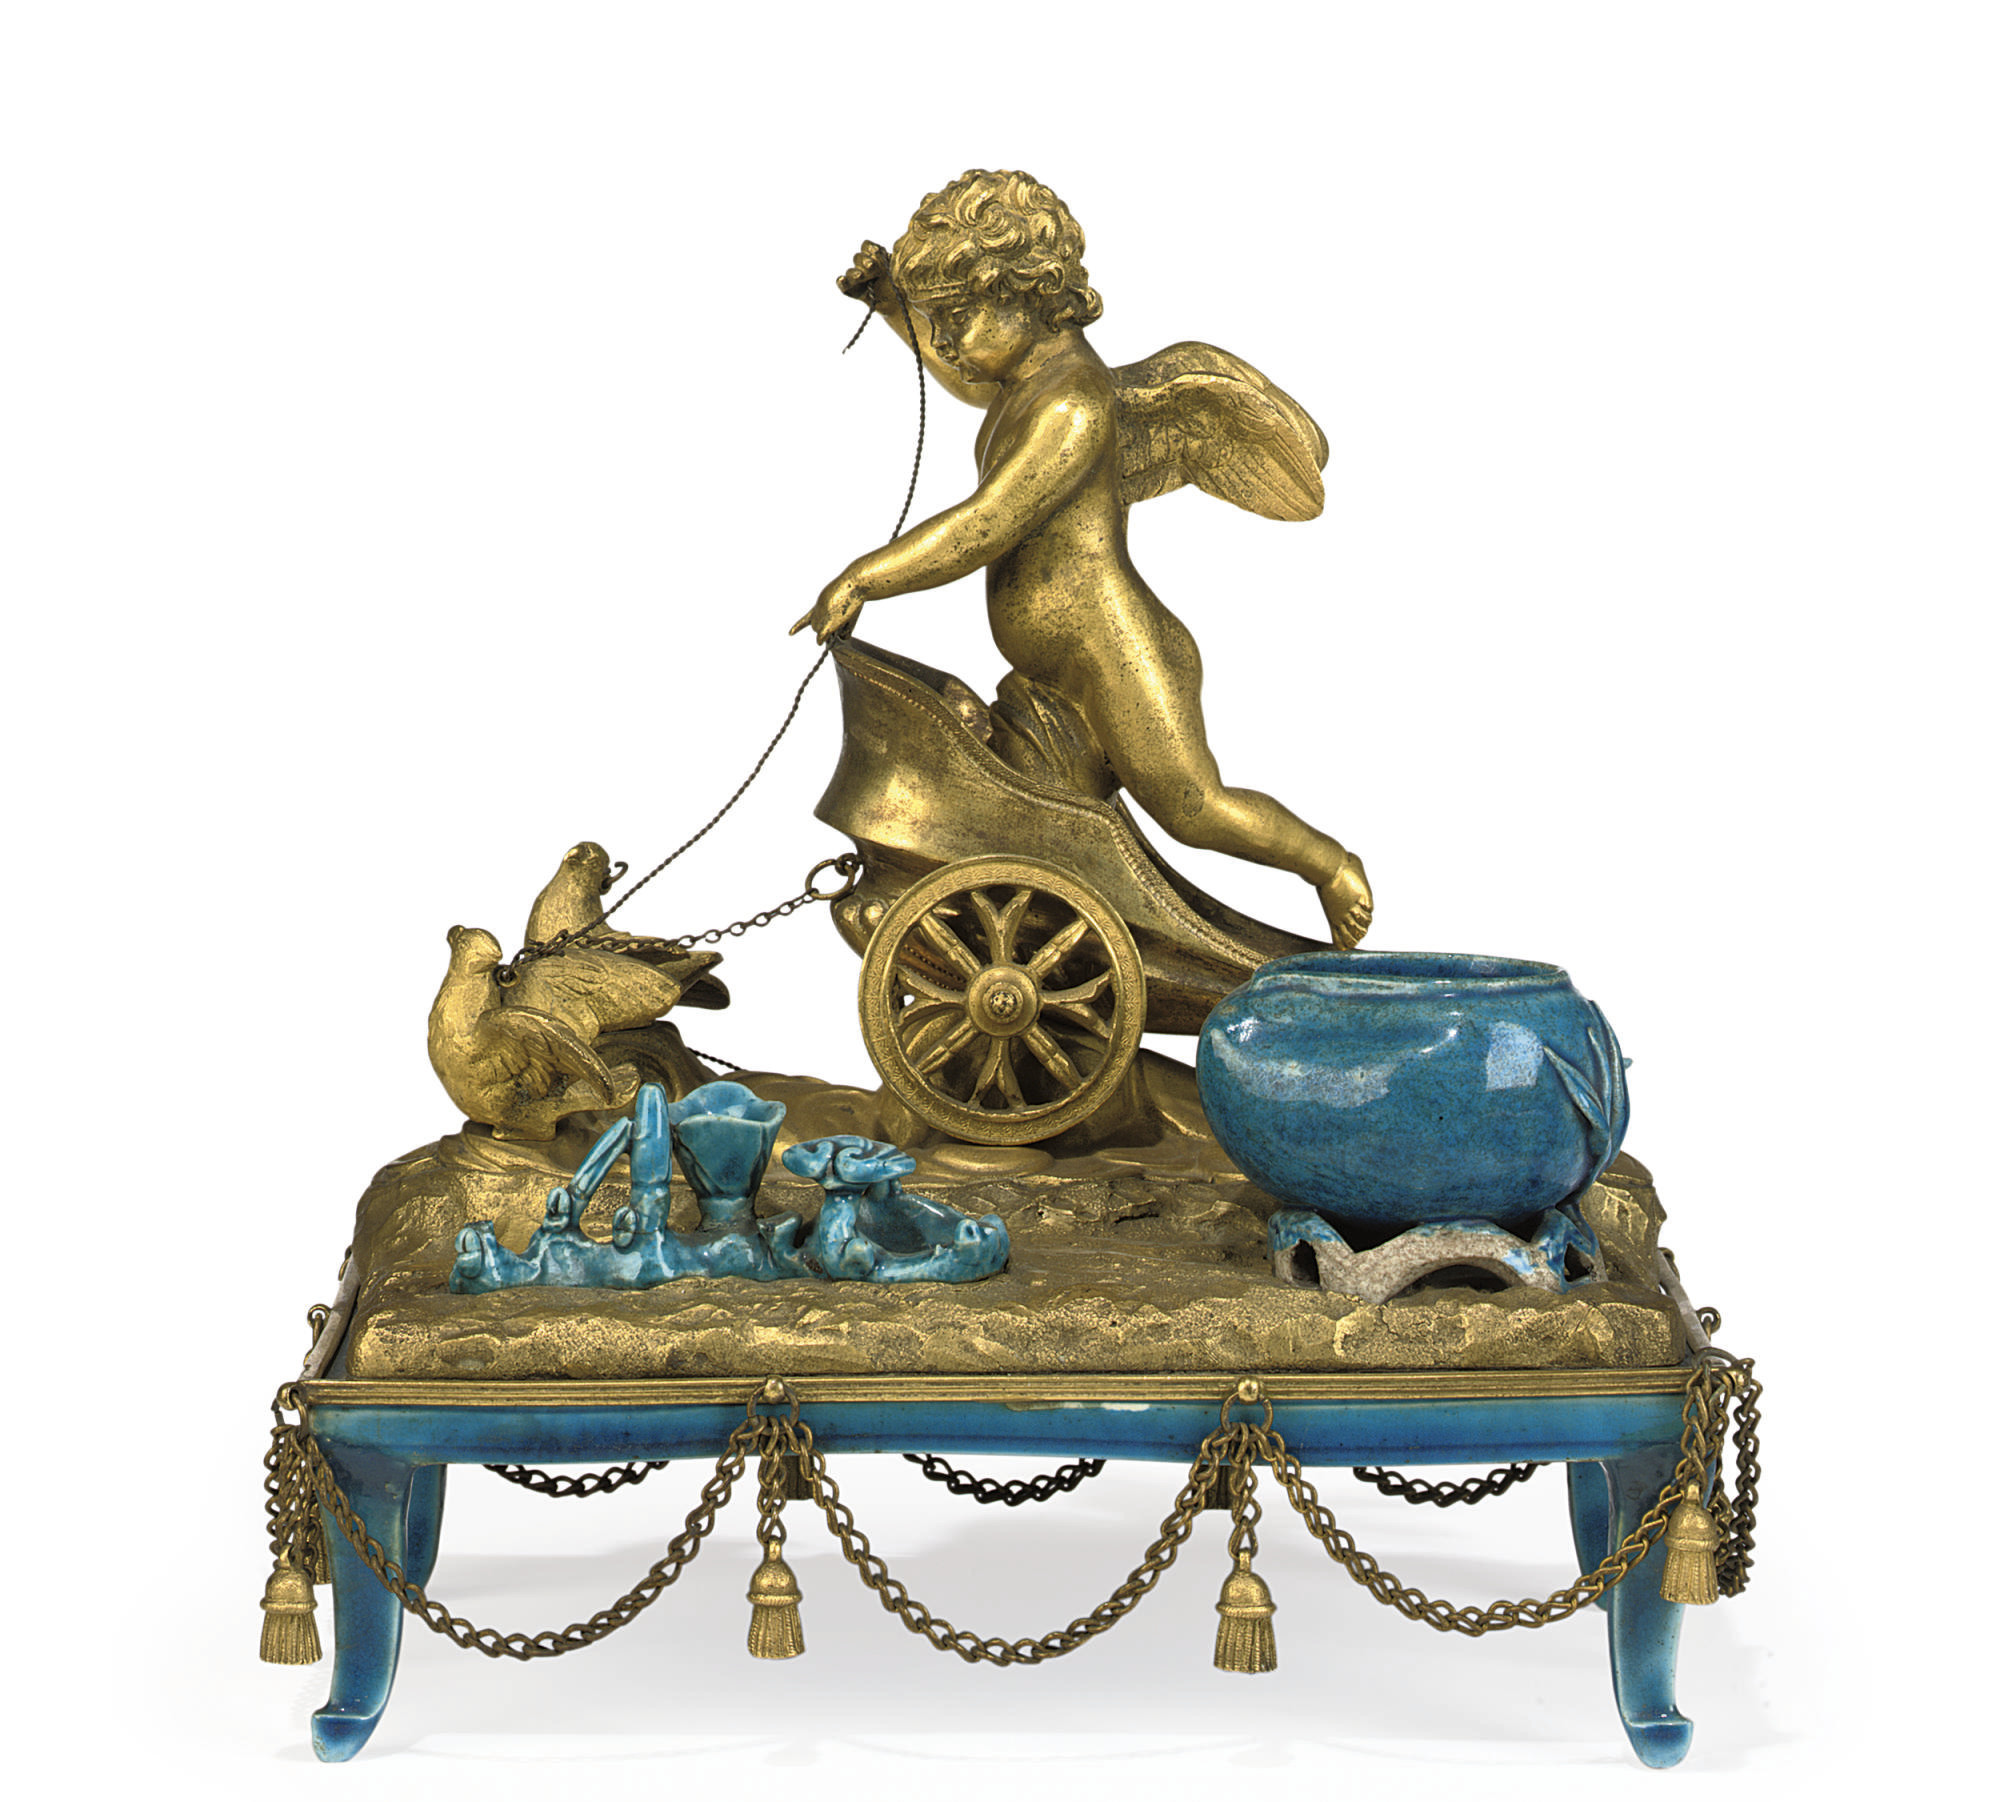 AN EMPIRE ORMOLU-MOUNTED CHINE